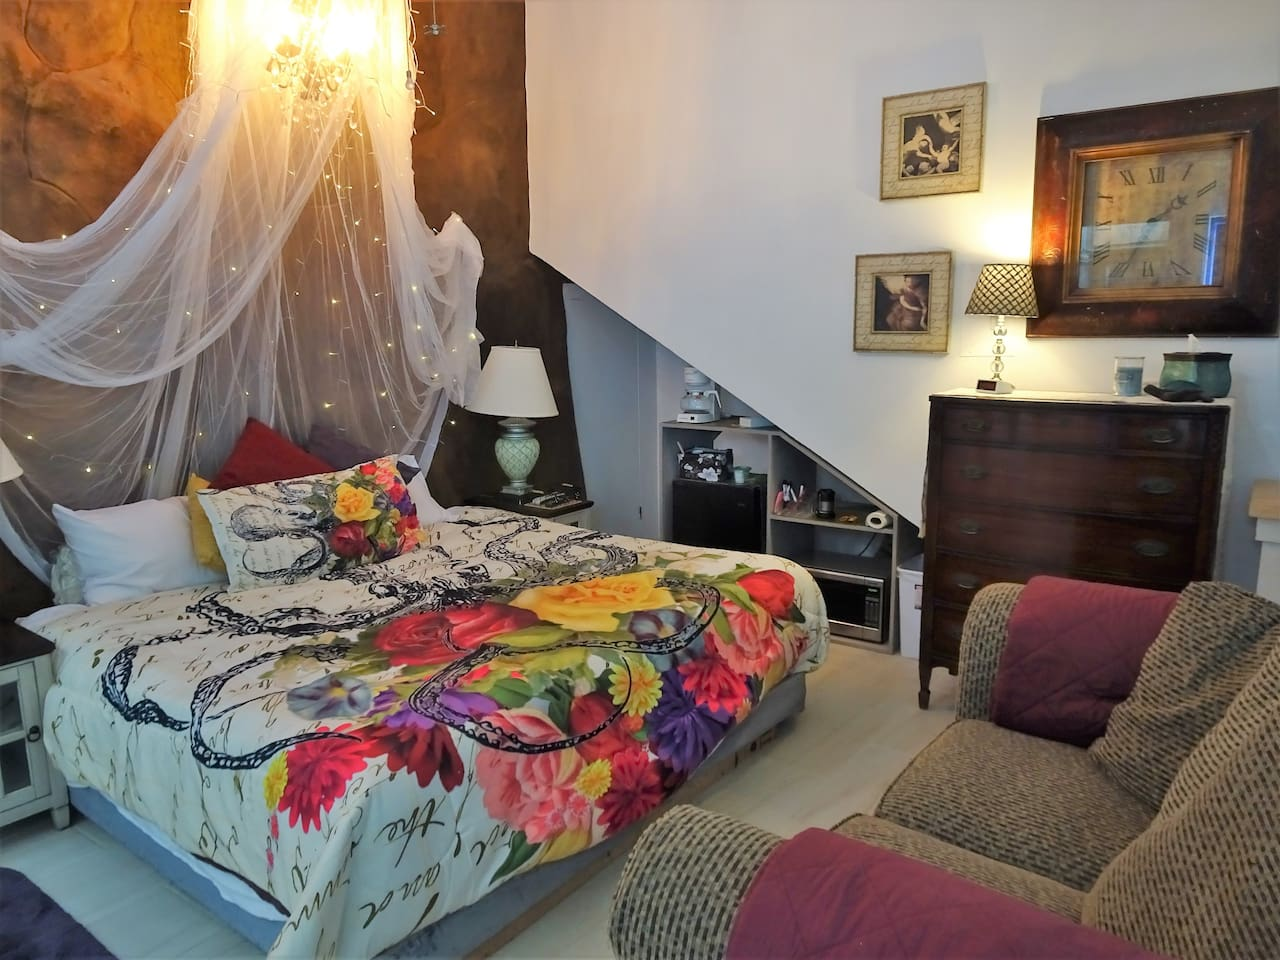 The Romantic Suite for 4 is on the beach and has a King Bed, Full Bath, Micro, small Refrigerator, and Coffee Pot.